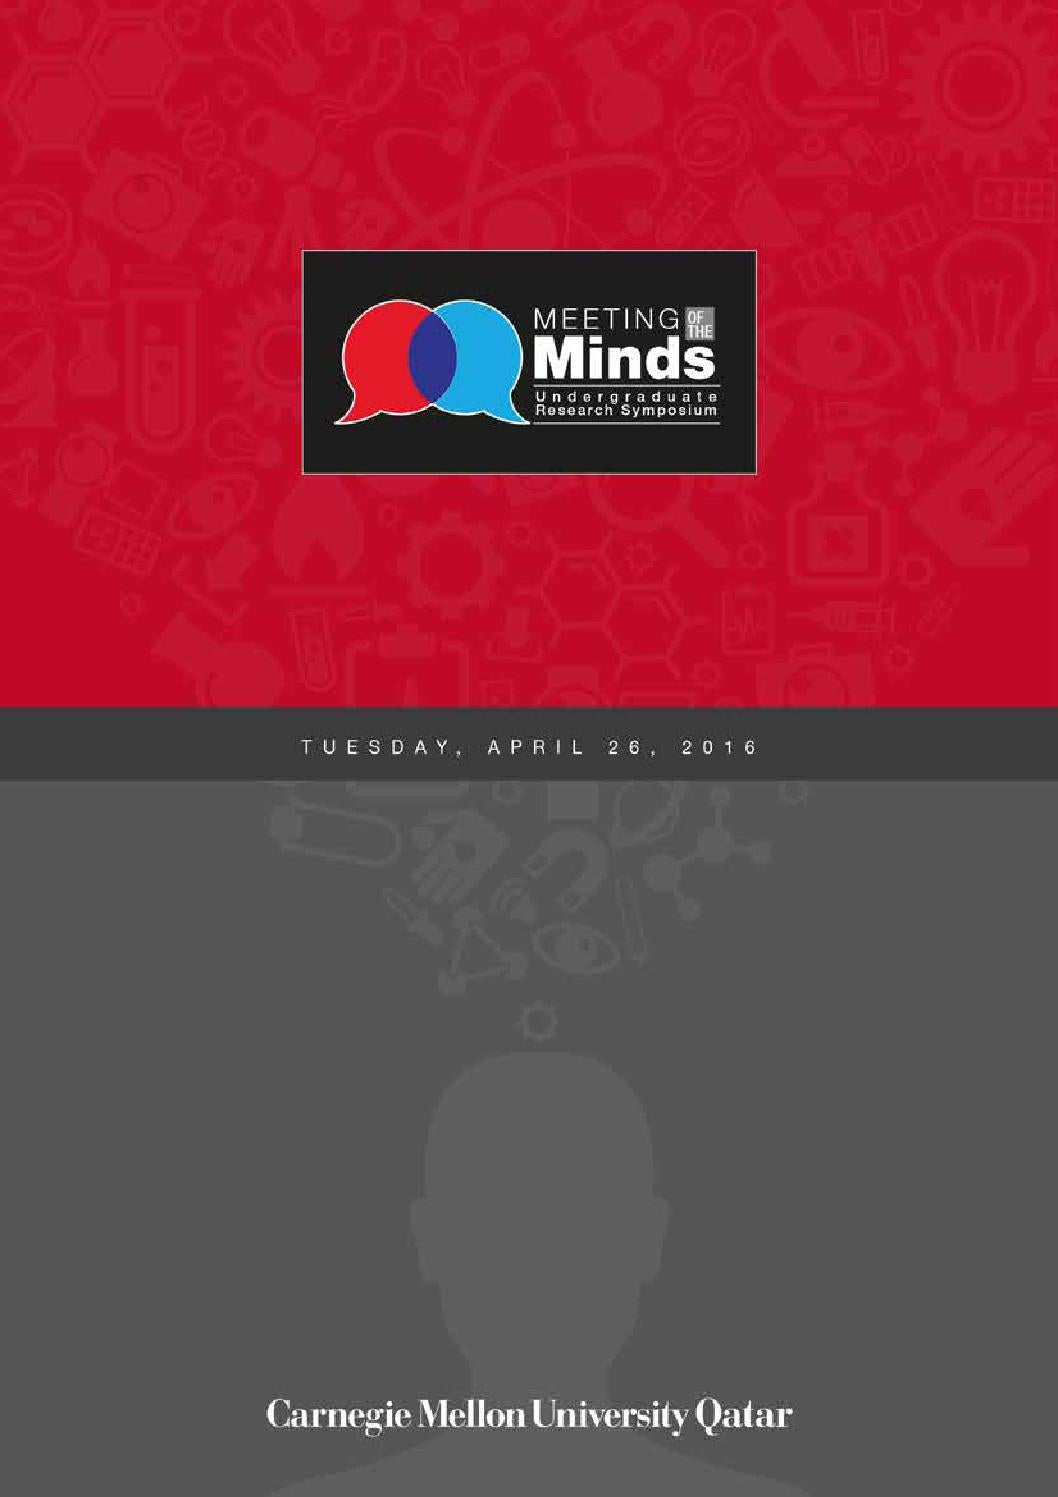 Meeting of the Minds 2016 by Carnegie Mellon University in